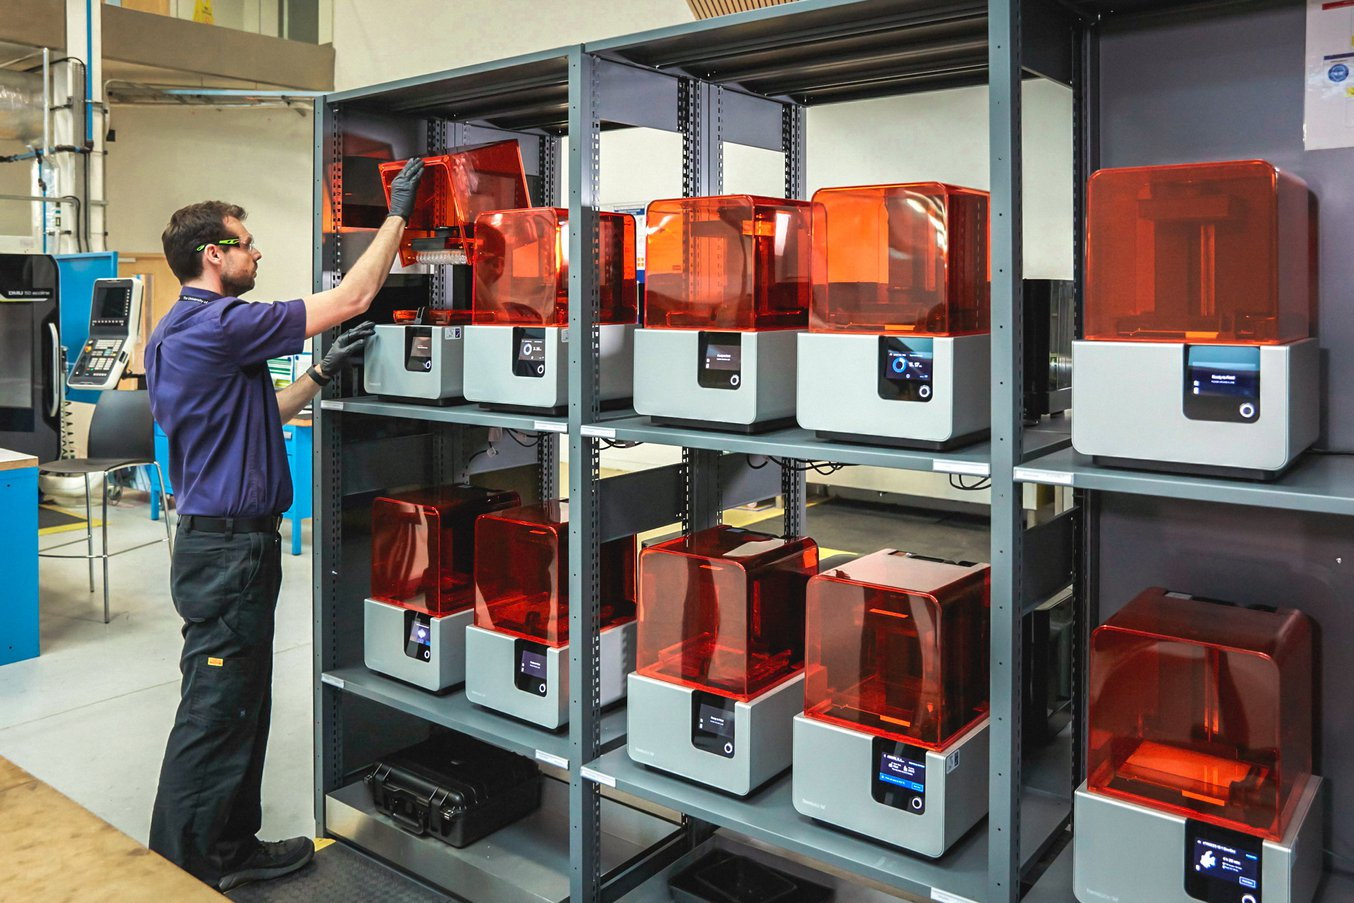 AMRC's printfarm of 12 Formlabs Form 2 3D printers. Photo via AMRC.